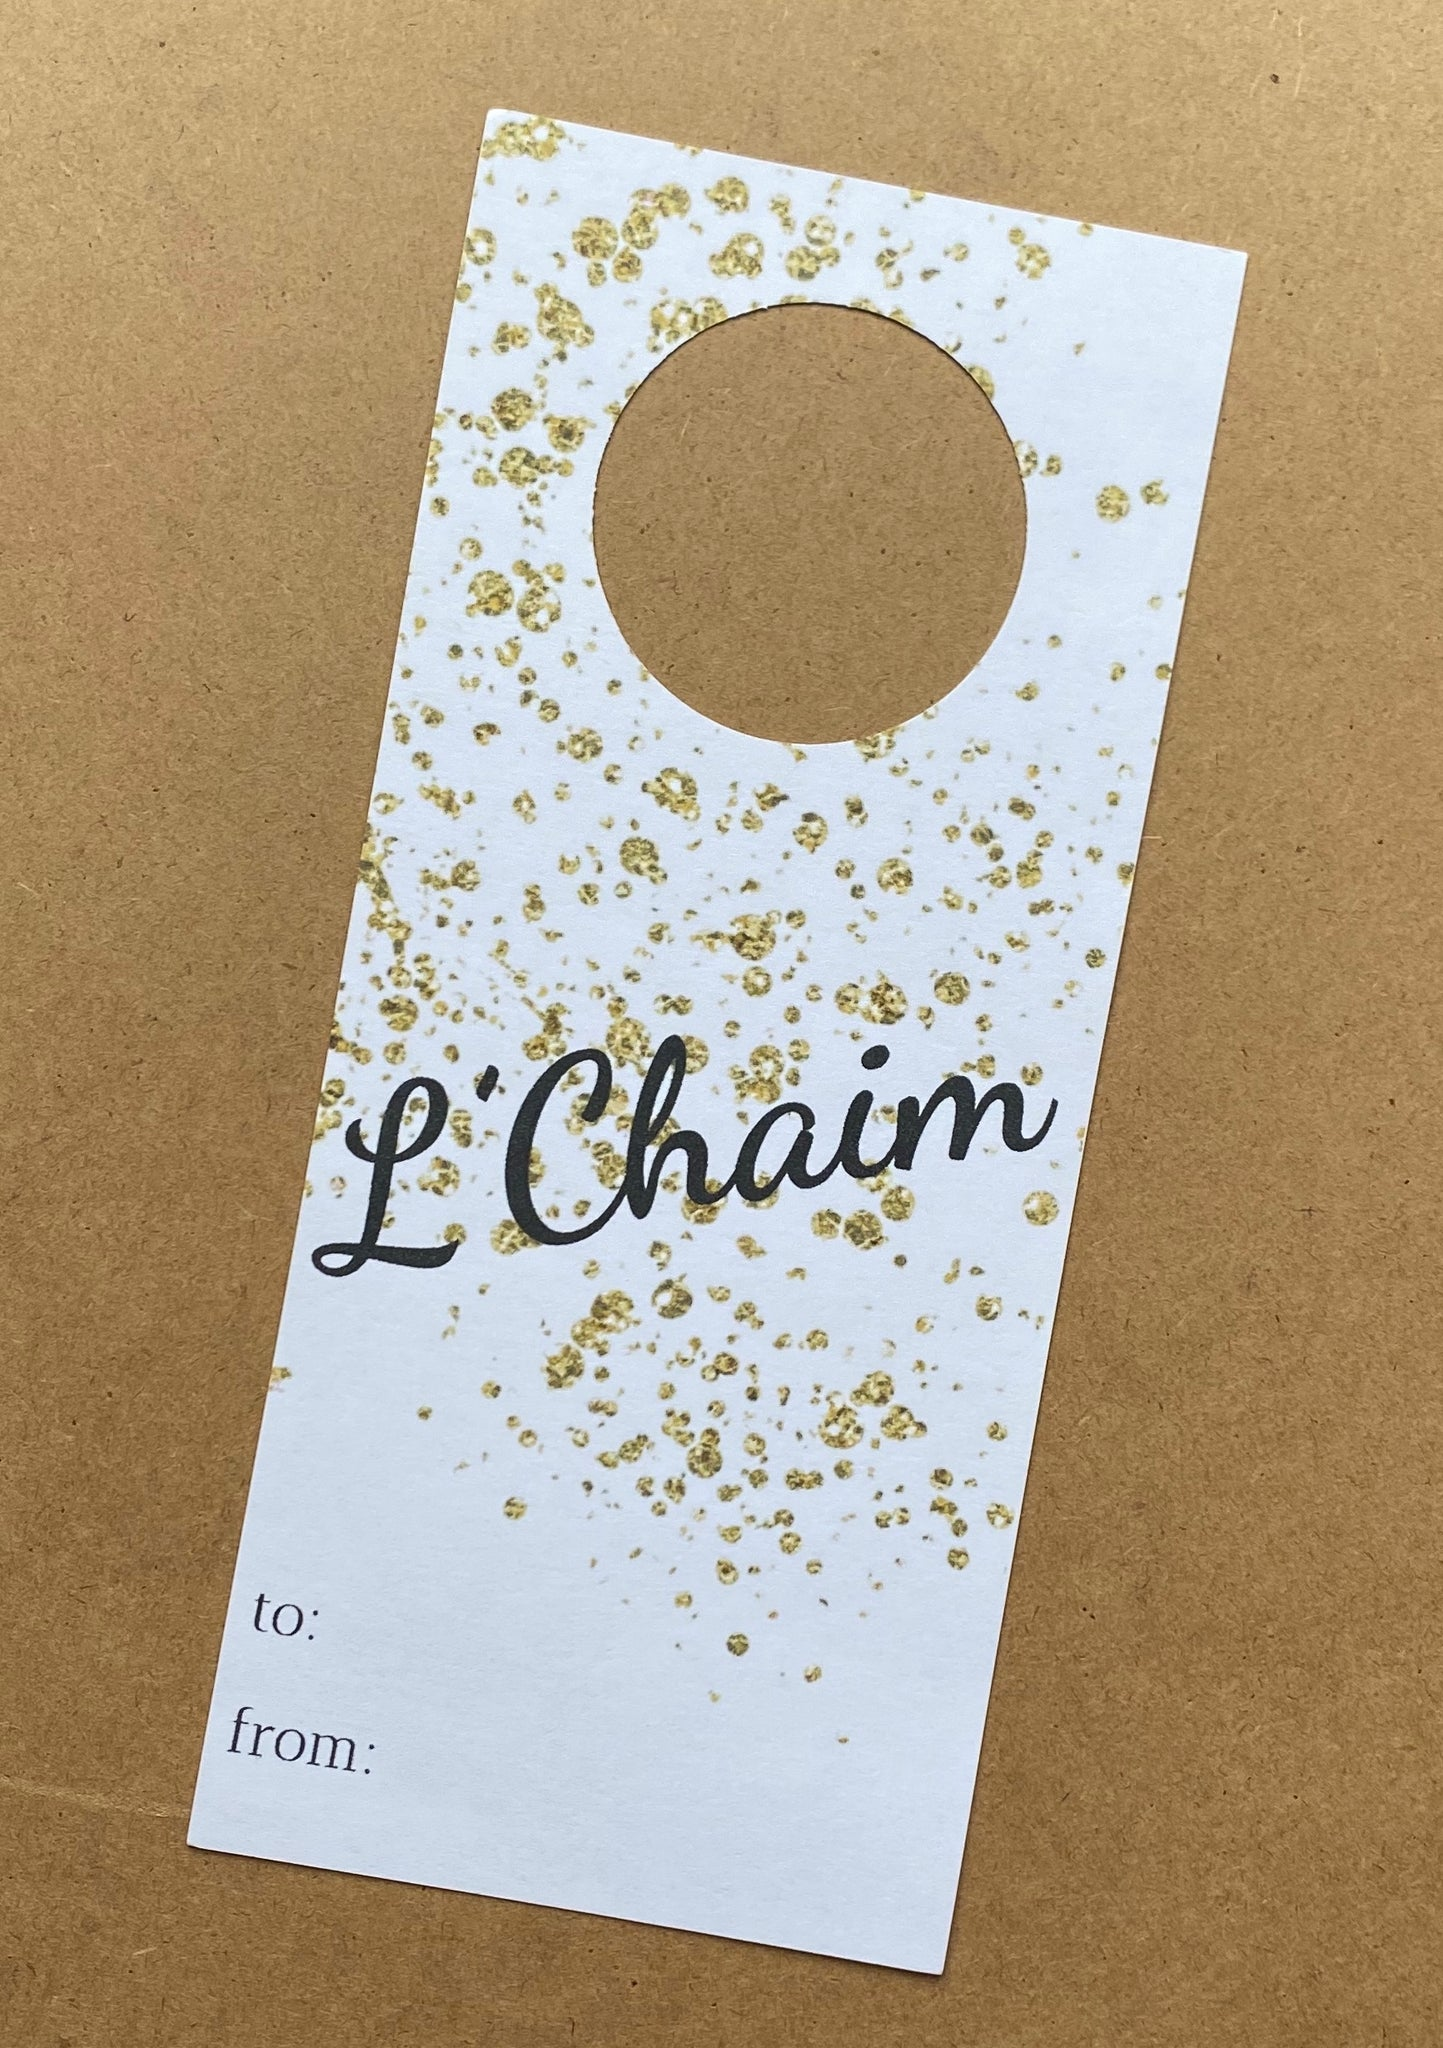 WINE TAGS L'CHAIM - SUPPORTS ONE TREE PLANTED